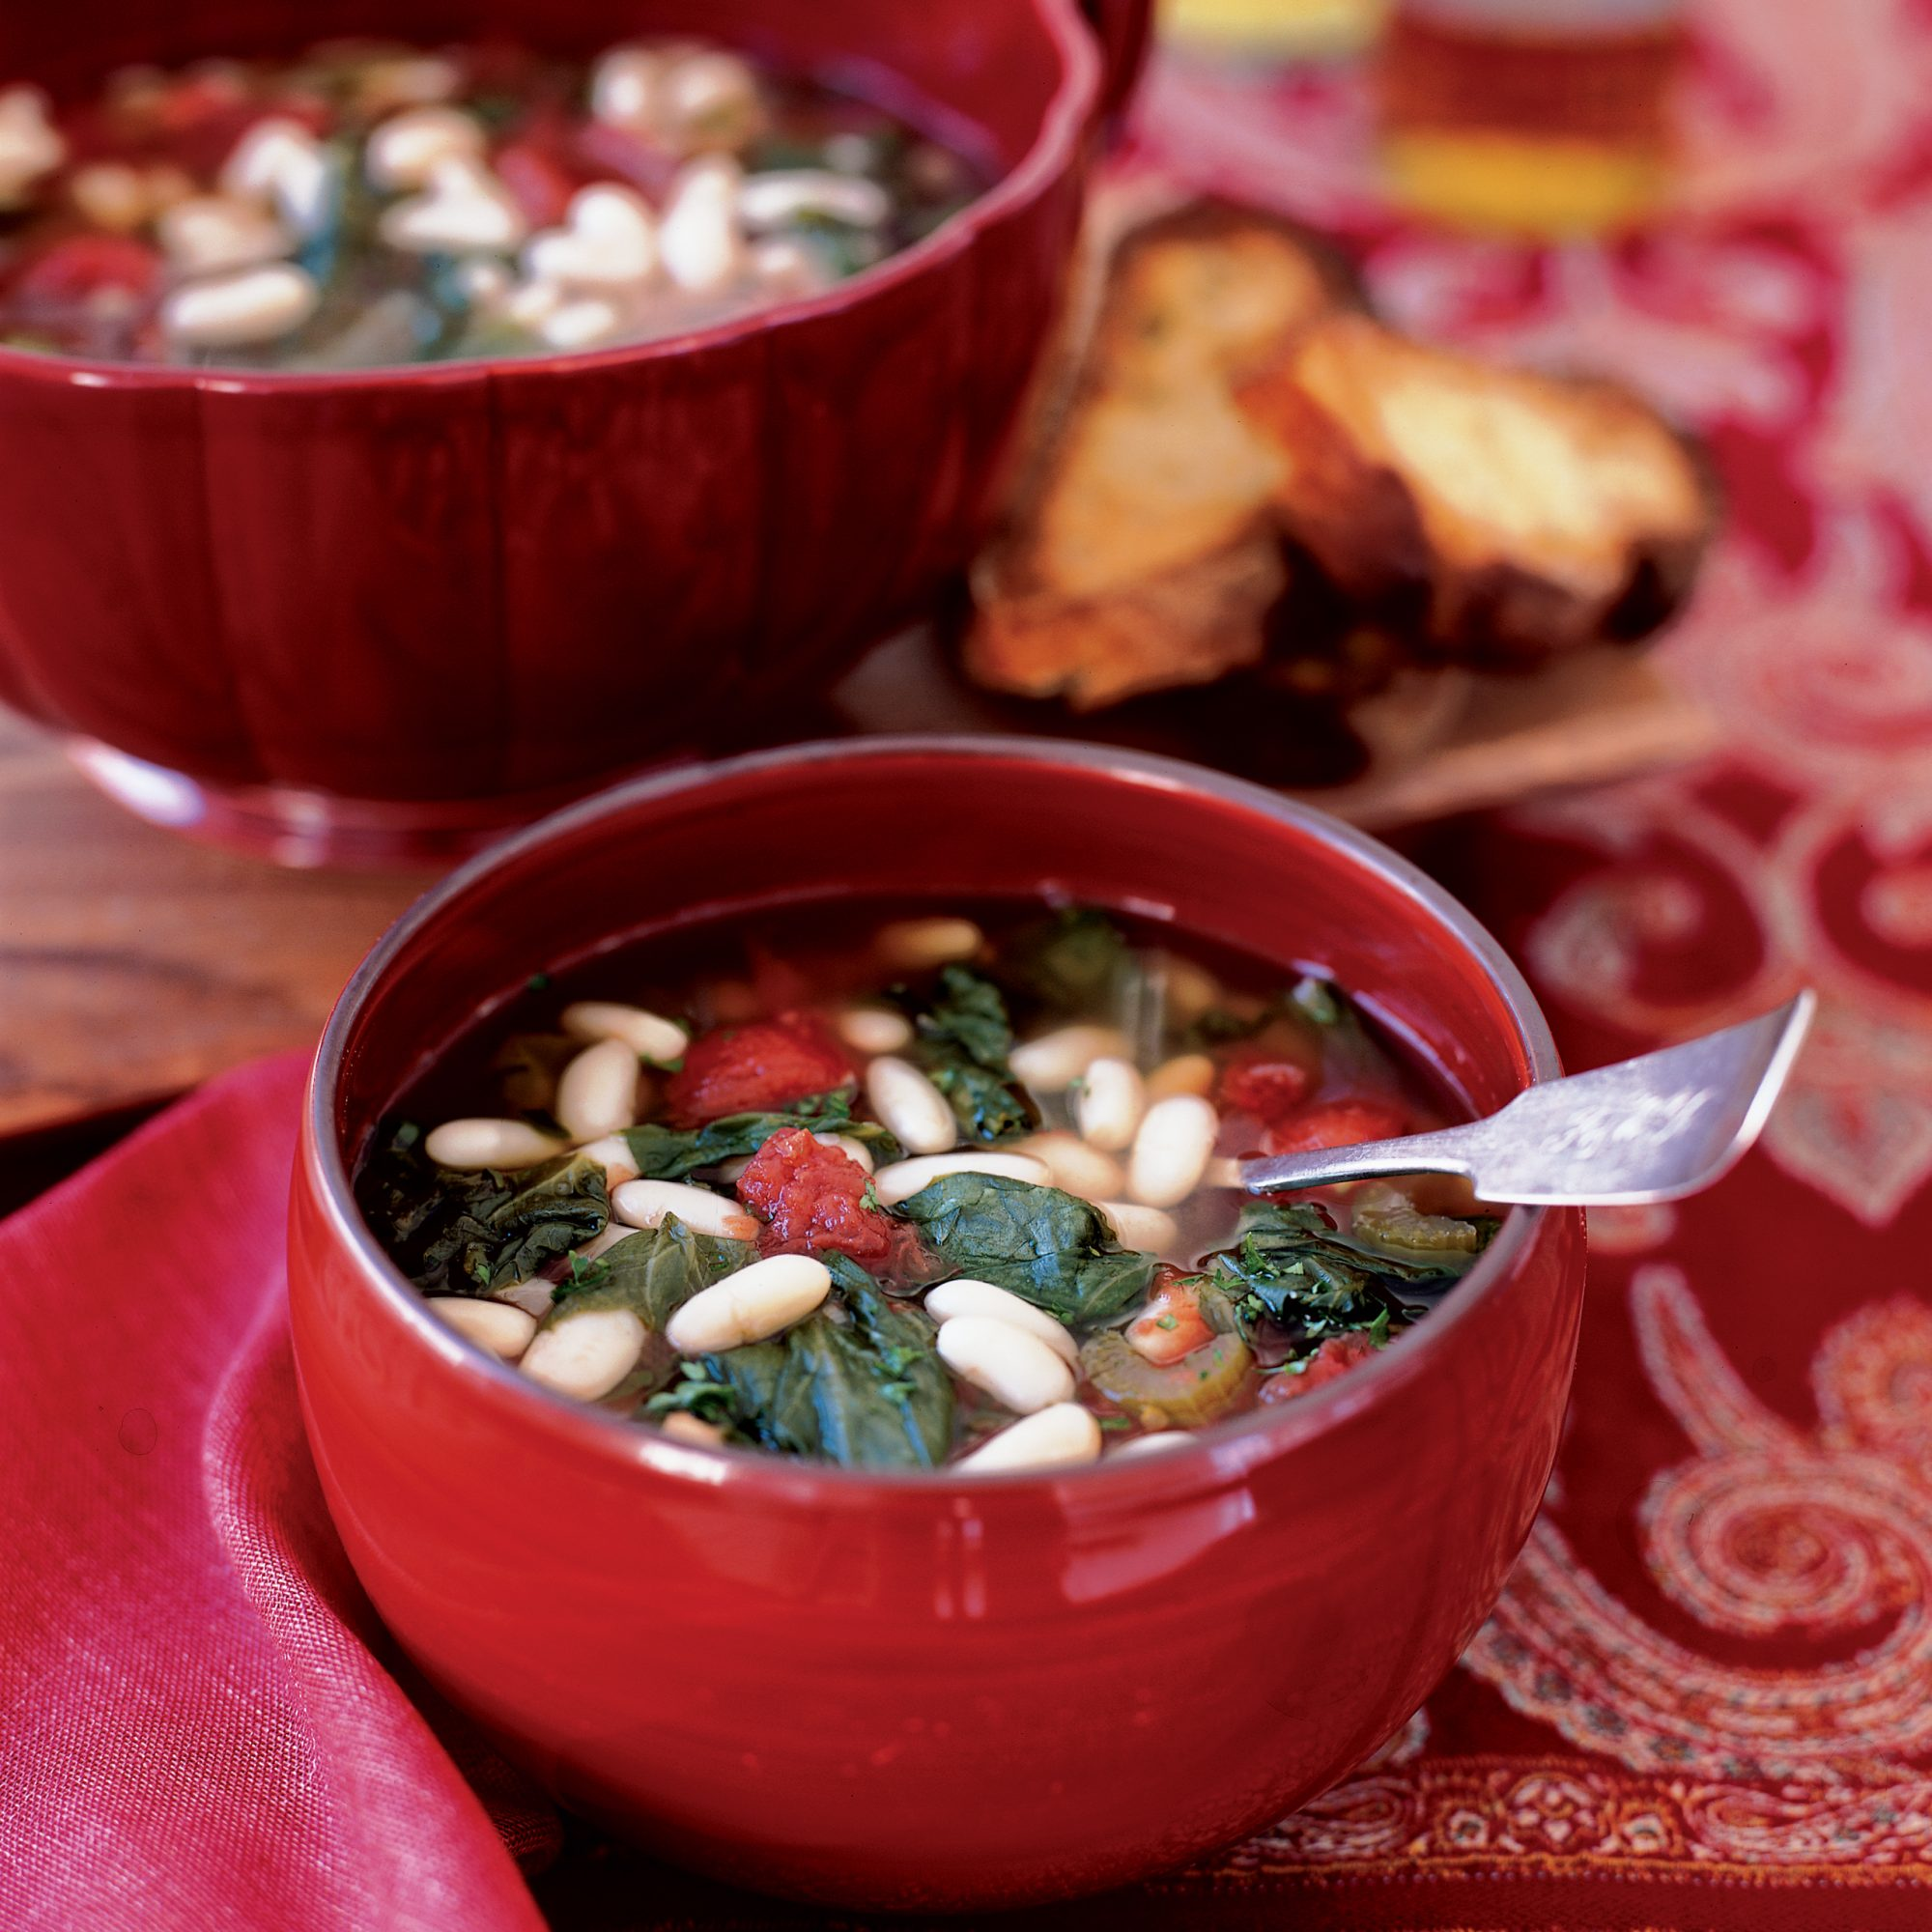 200411-r-cannellini-bean-escarole-soup.jpg